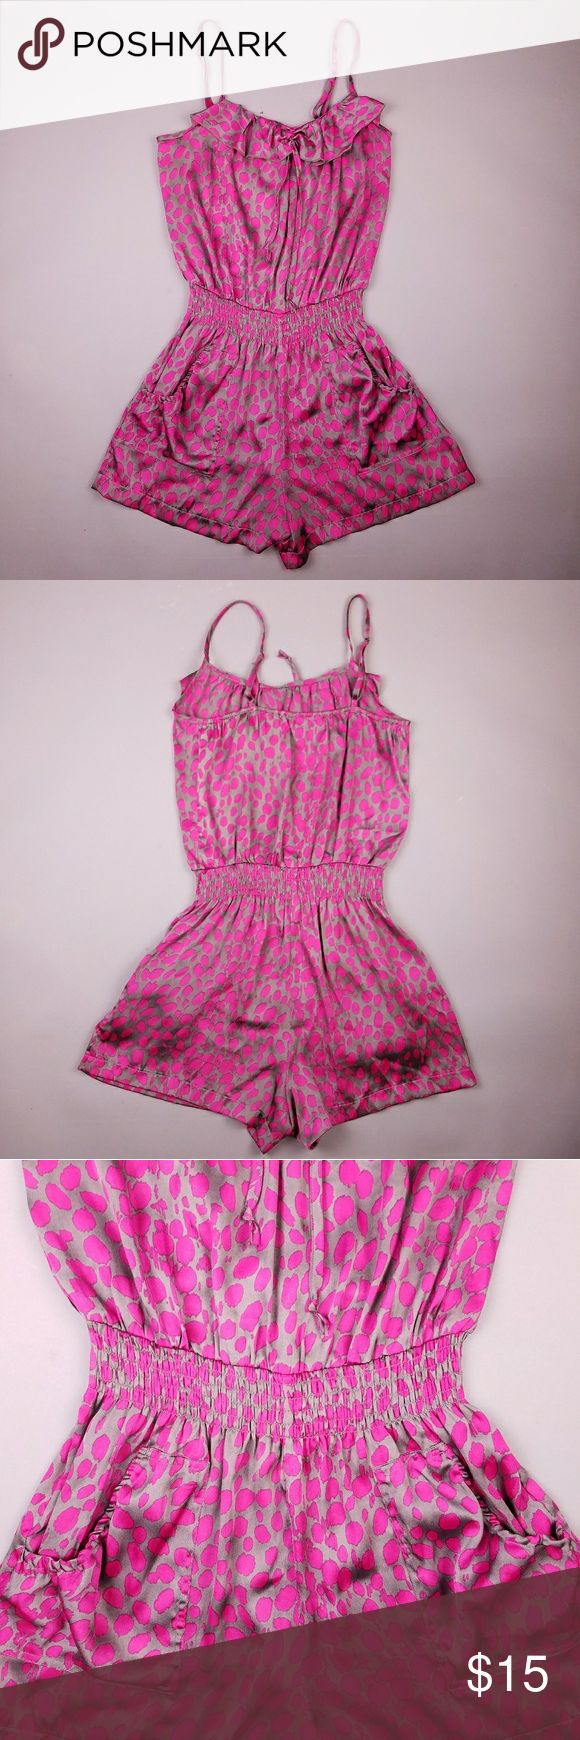 """Small pink and silver satin semi sheer romper Womens shorts romper in hot pink and silver semi sheer polyester with a shiny satin finish. ?Excellent condition, never worn.?   -Adjustable spaghetti straps?  -Ruffle neckline?  -Stretch waist?  -Stretch back of neckline?  -Hip pockets?   Brand: BETTER B  Size: Small?  Length (shoulder to crotch): 33""""-36"""" max strap extension  Bust: 36""""?  Waist: 22""""- 36""""?  Hips: 44""""?  Inseam: 2.5""""? better b  Other"""